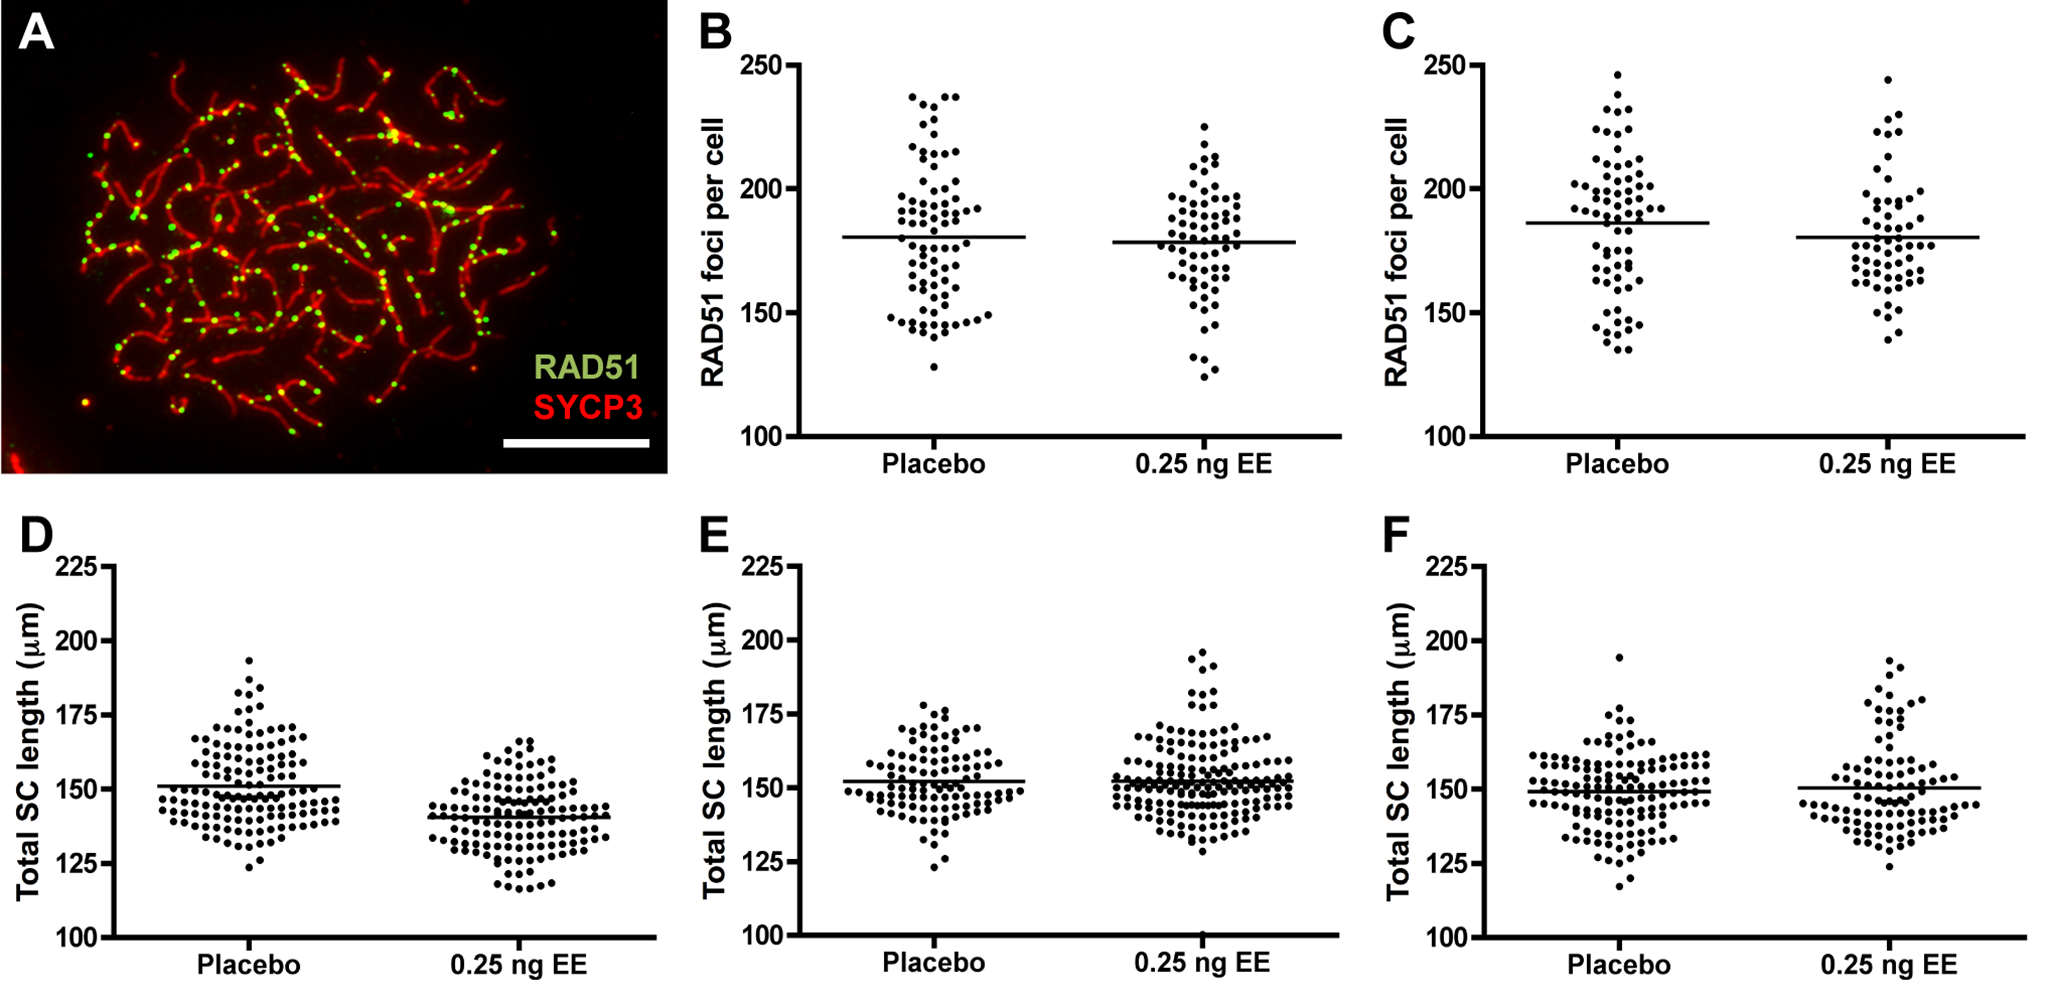 RAD51 foci counts and SC length measurements in placebo and exposed CD-1 males.